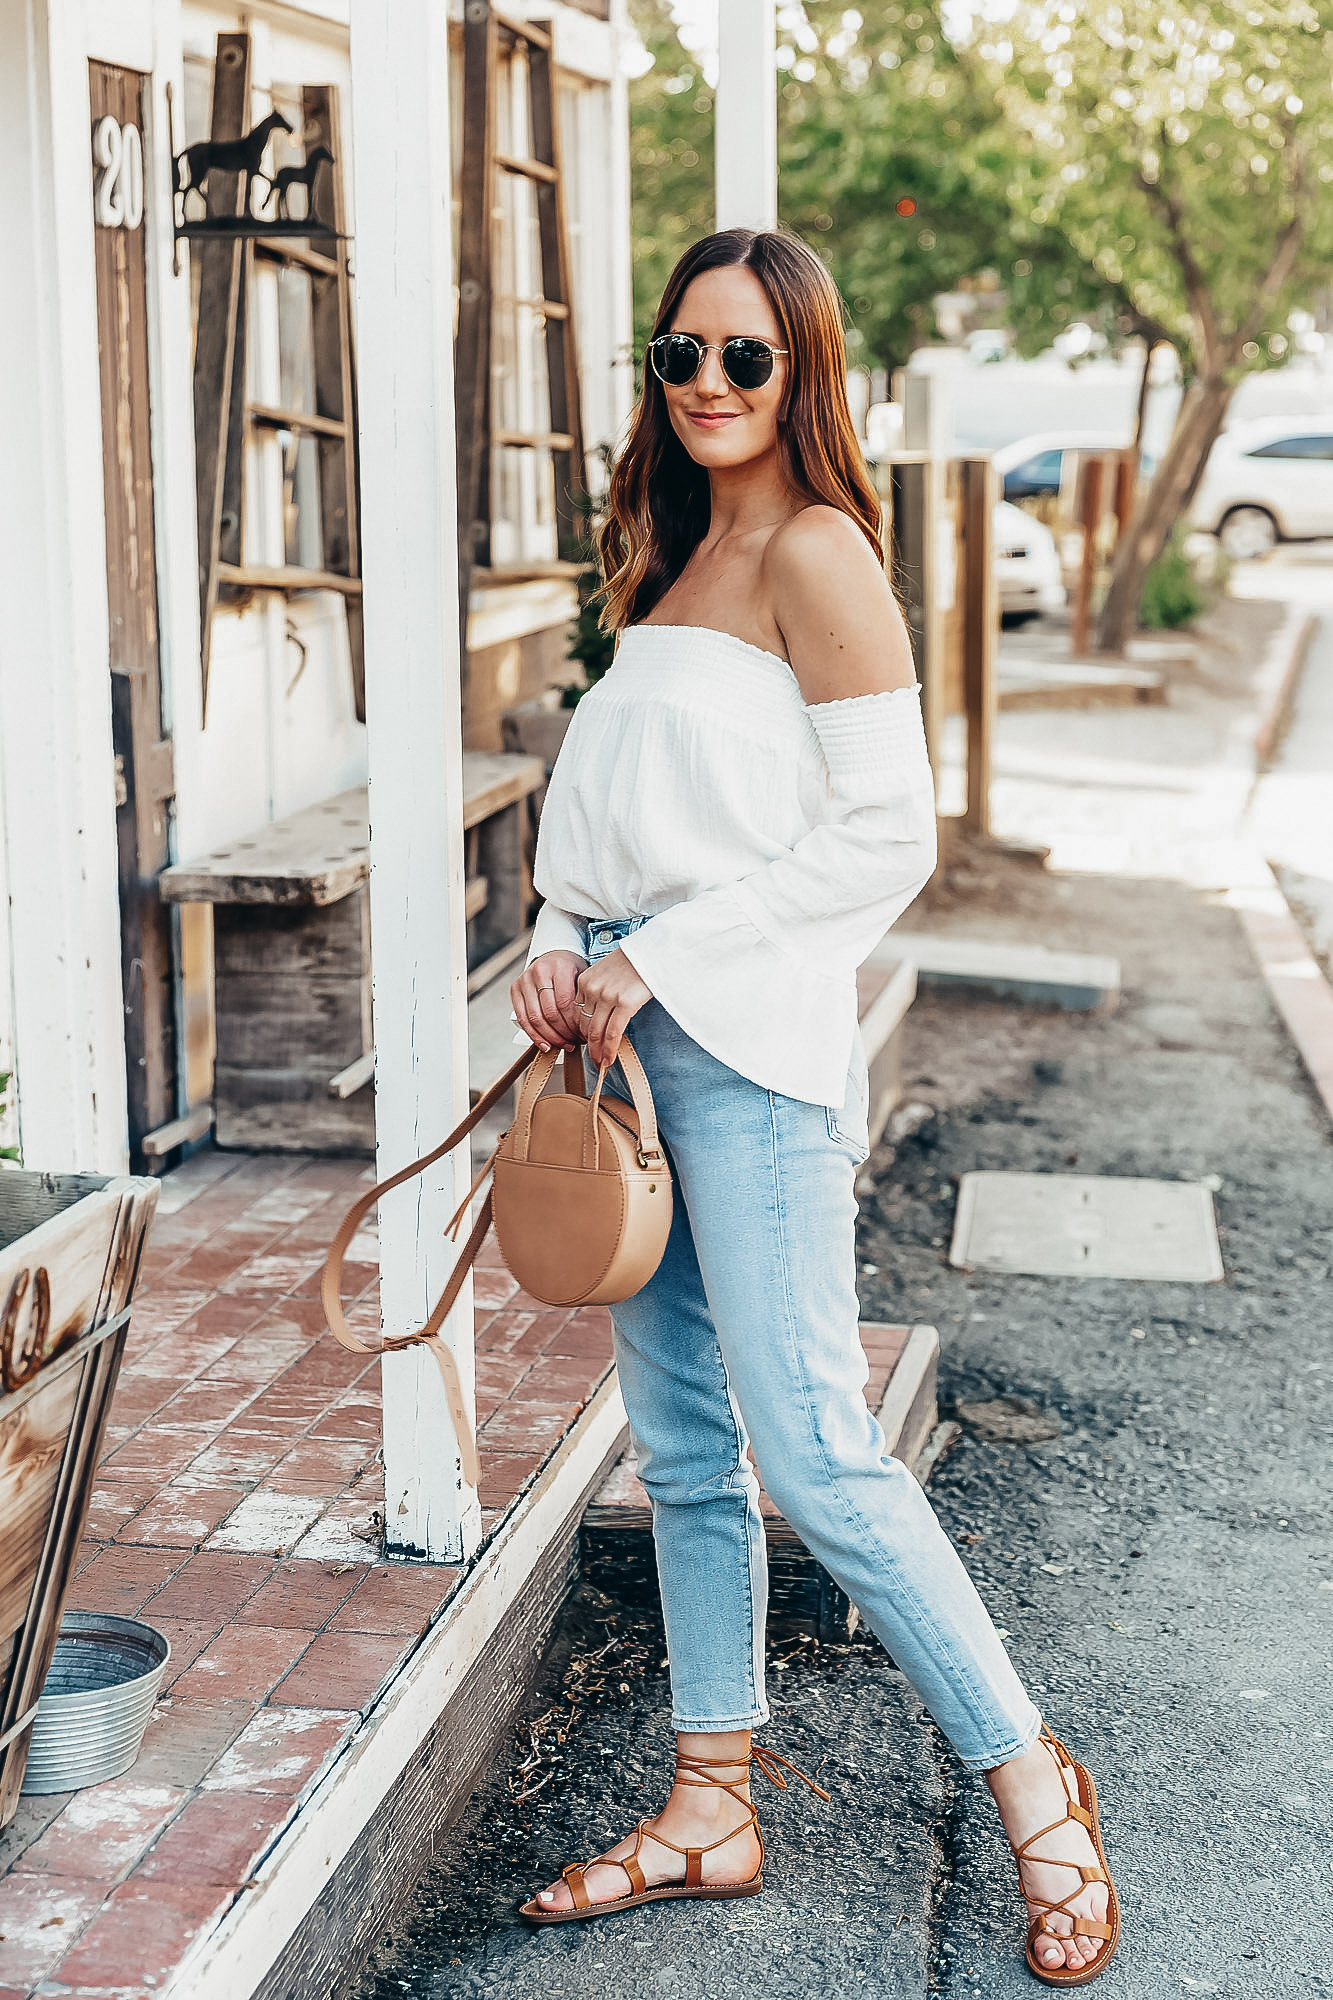 Shop the Look Below.  BB Dakota Top  |  Levi's Jeans  |  Madewell Sandals  |  Madewell Bag  |  Ray-Ban Sunglasses  |  Gorjana Rings  c/o